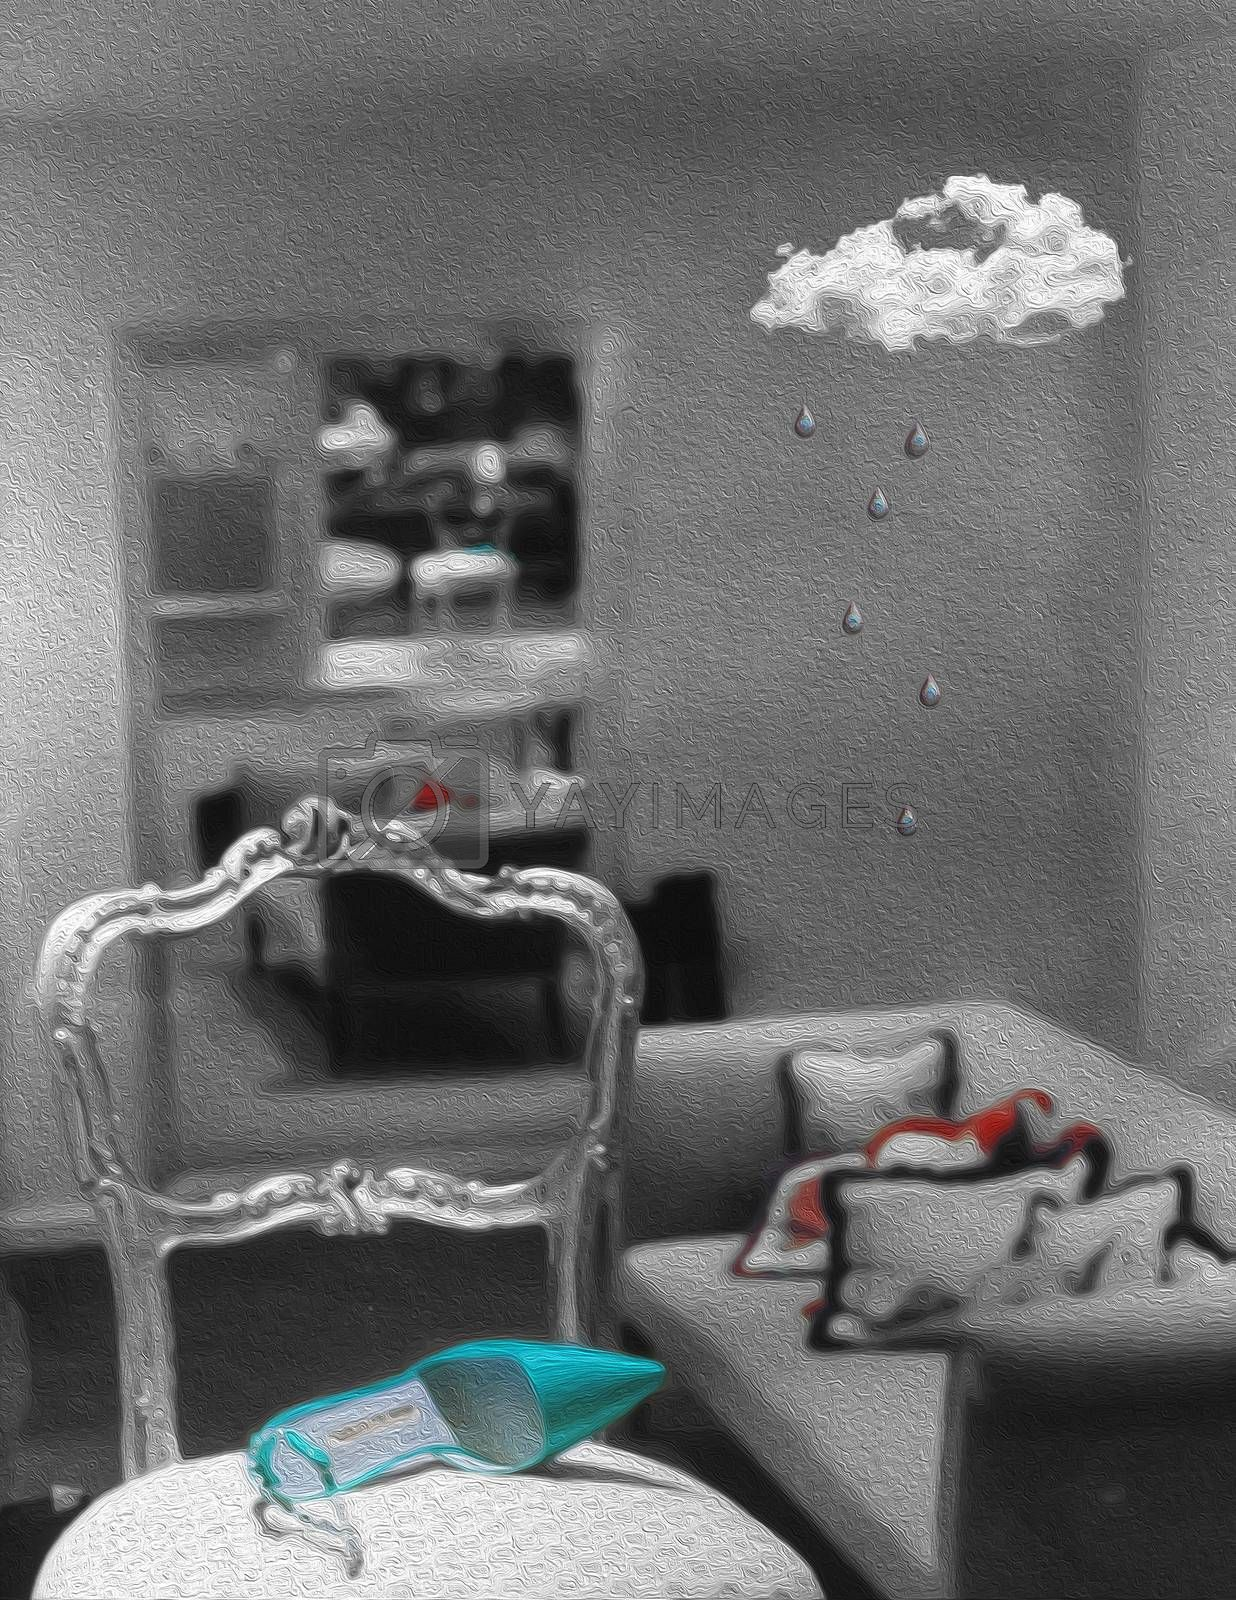 Symbolic composition. Woman's shoe on a chair. Rainy cloud in living room